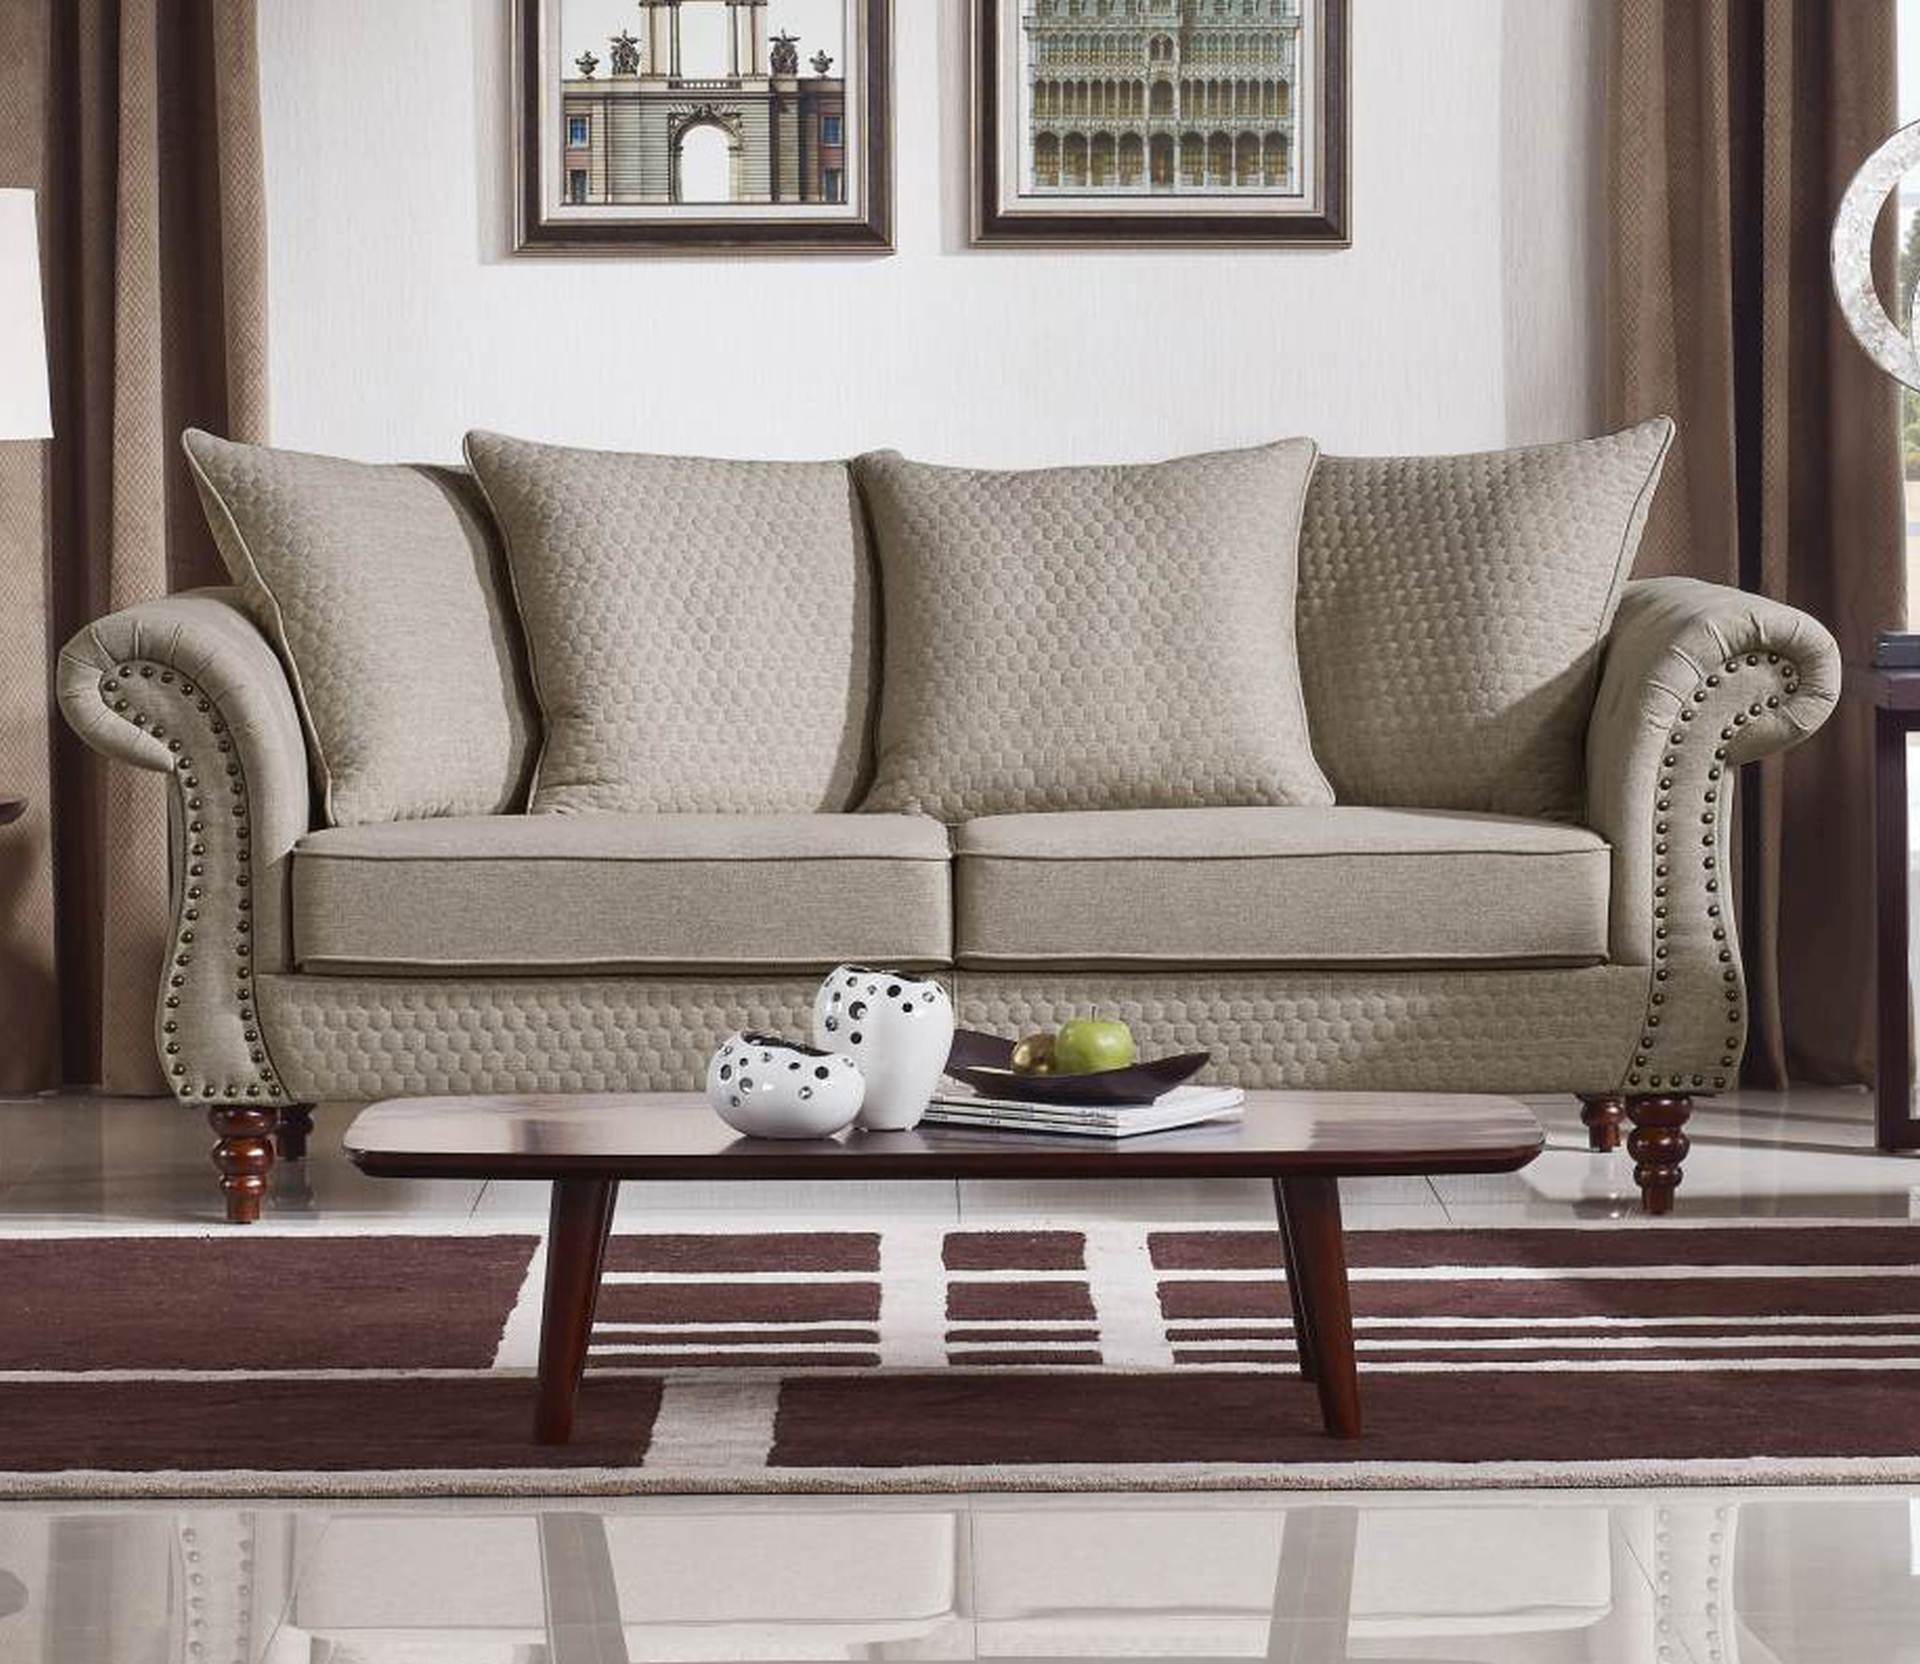 Lounge Designer Furniture: Desiner Sofa Bologna Italian Designer Sofas